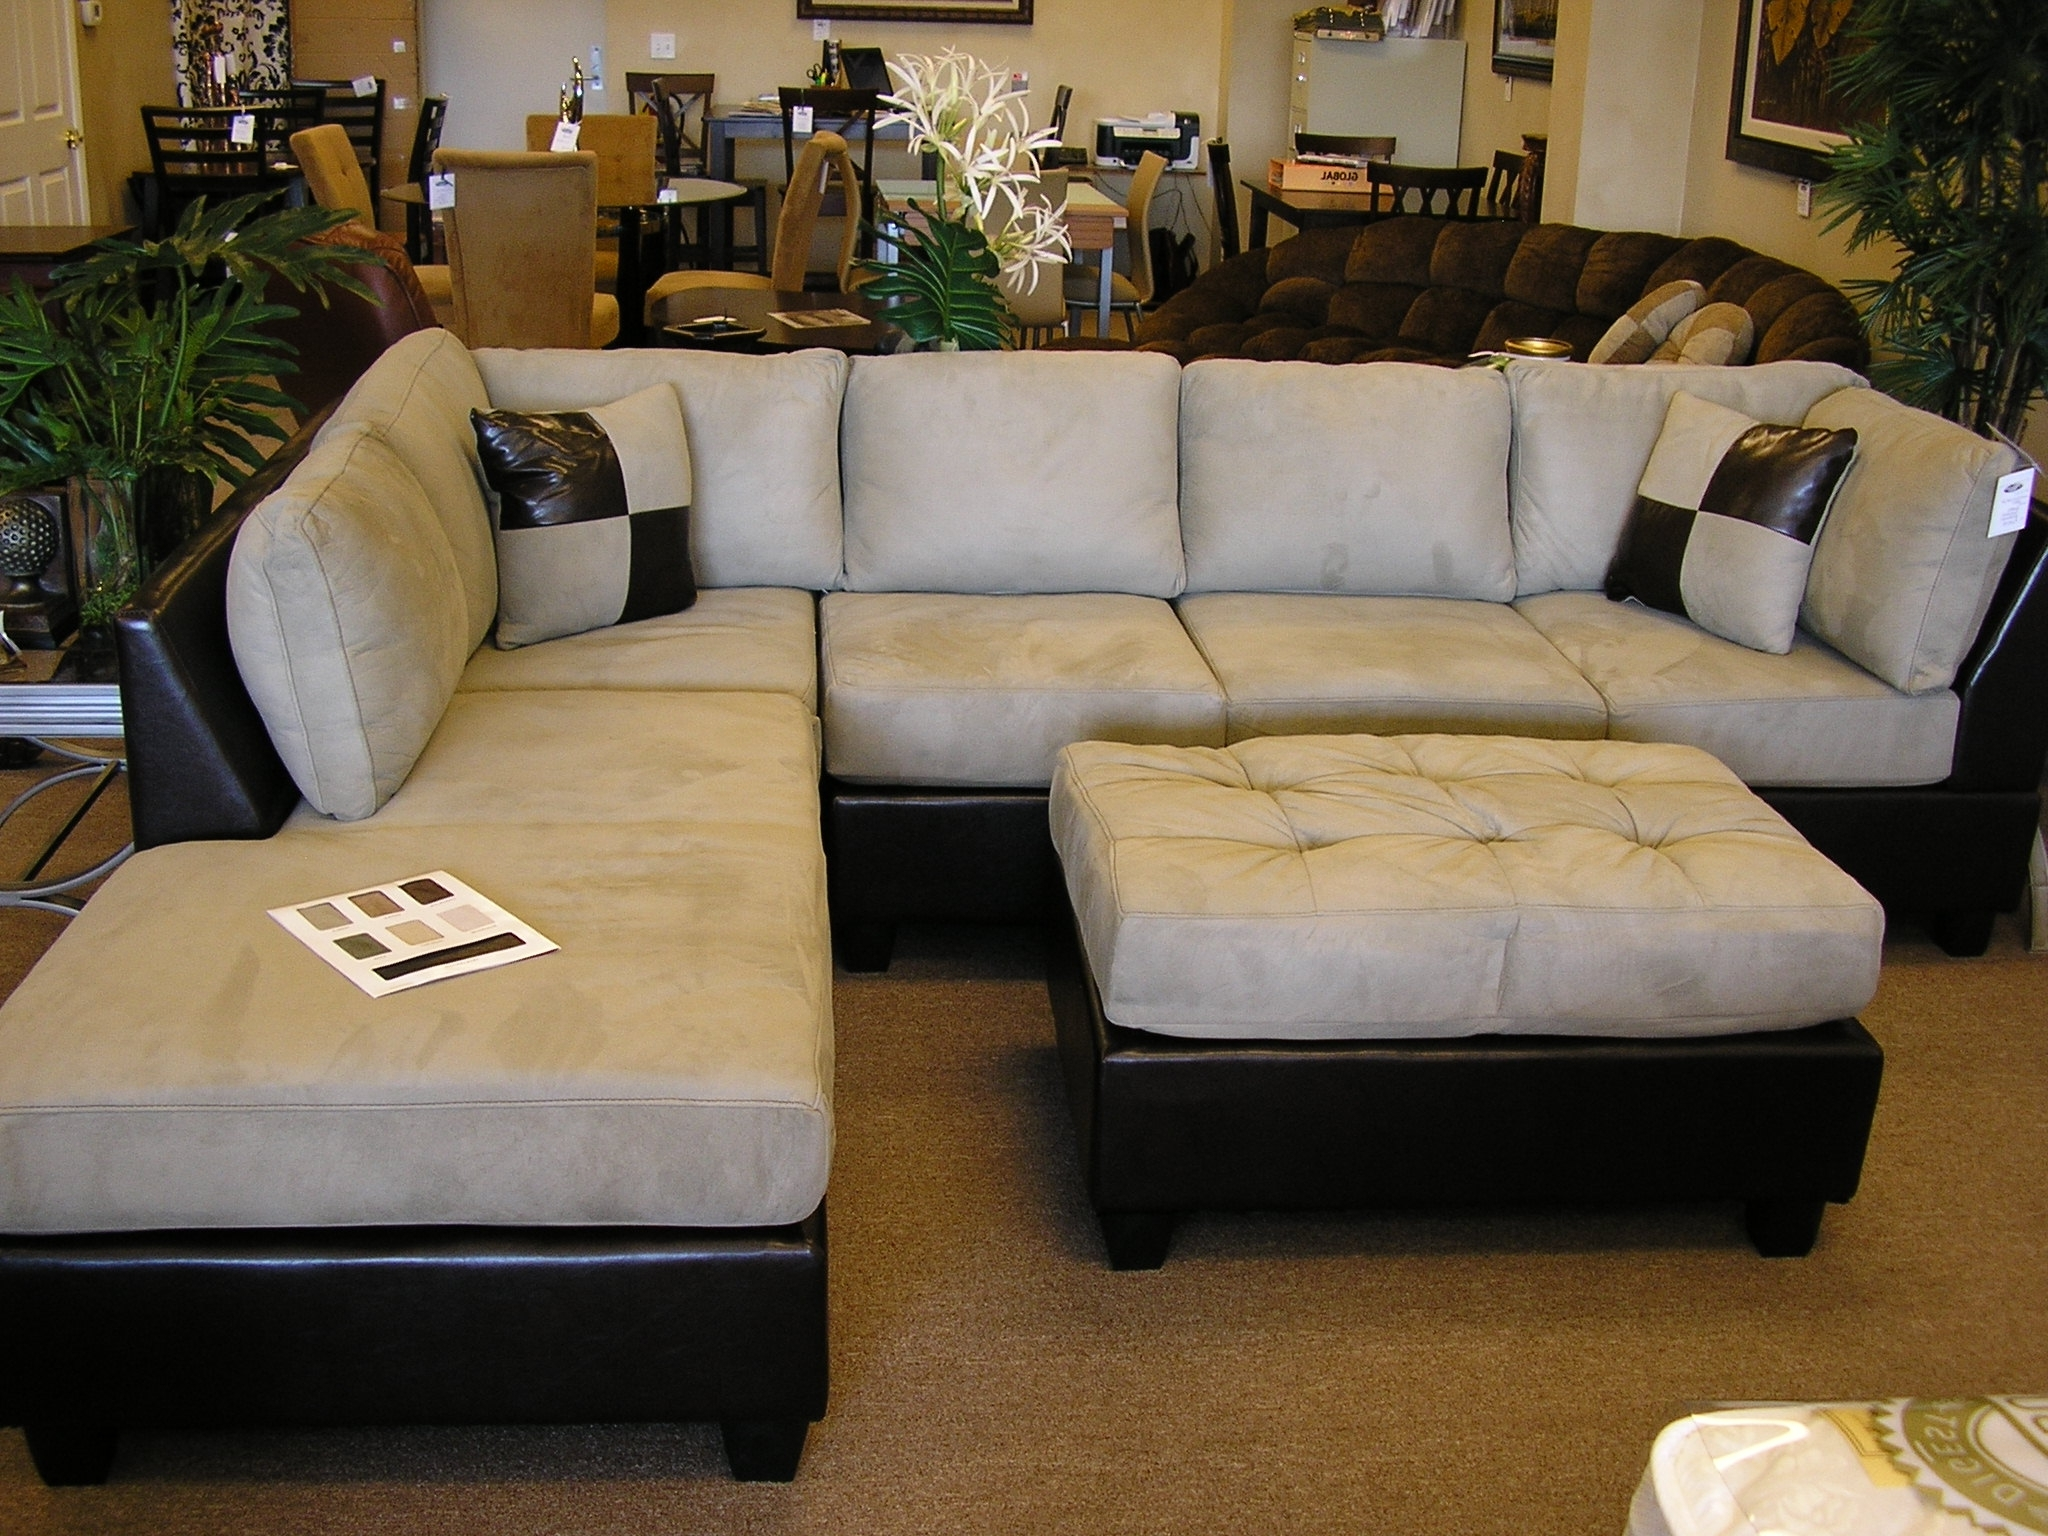 of shaped unique cheap sleeper full sales cheapcheap for sectional sofas sofa ranch sale lovely size fabulous design l